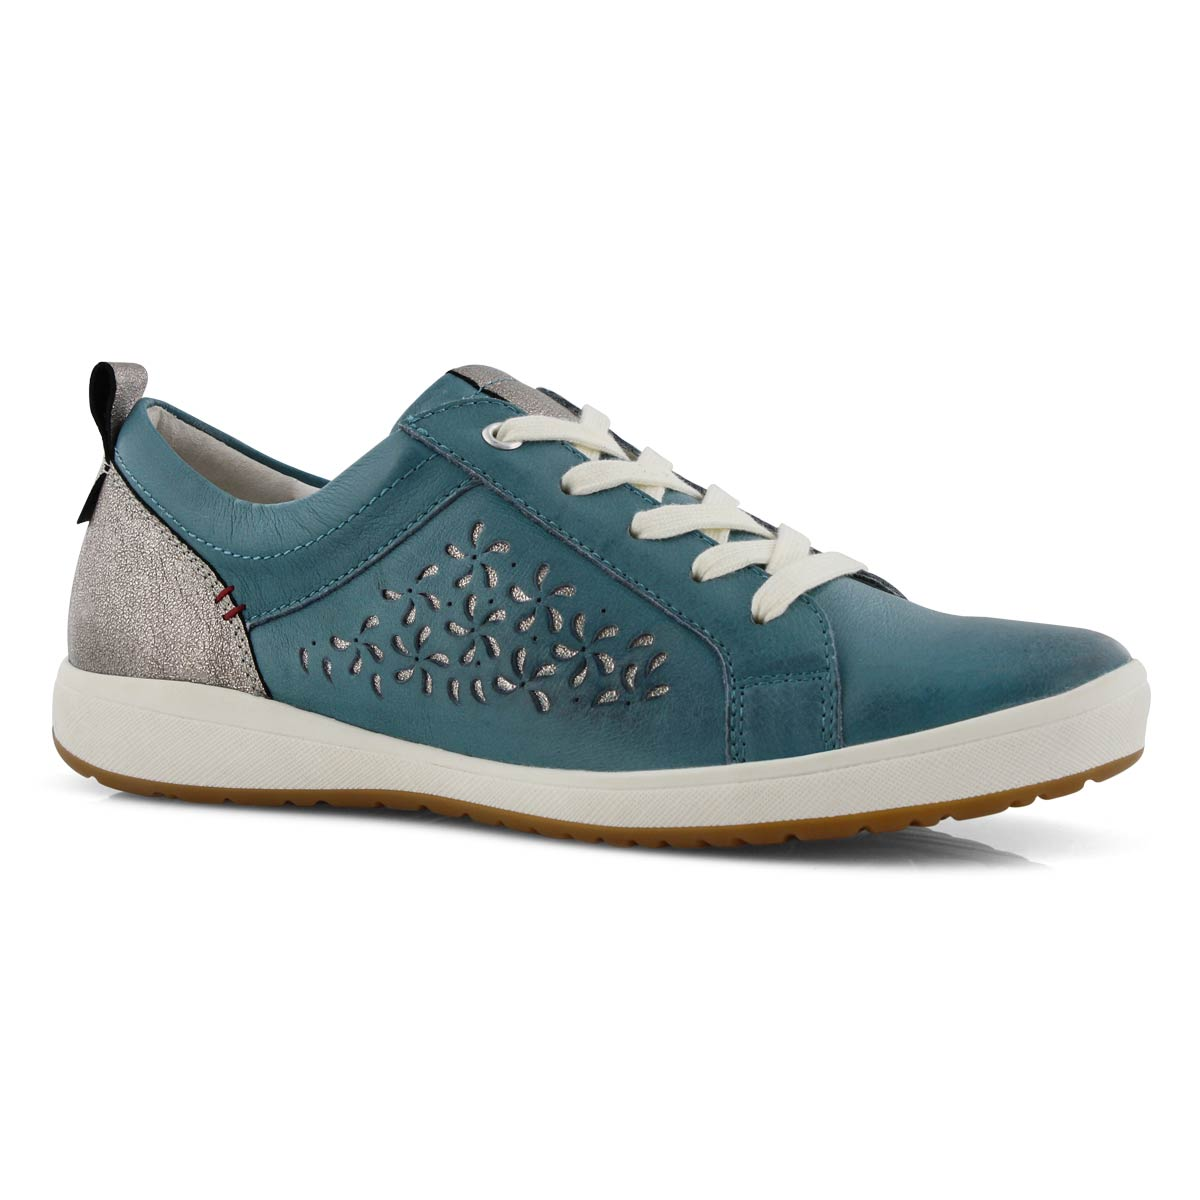 newest a2500 3ab97 Women's CAREN 06 blue lace up sneakers